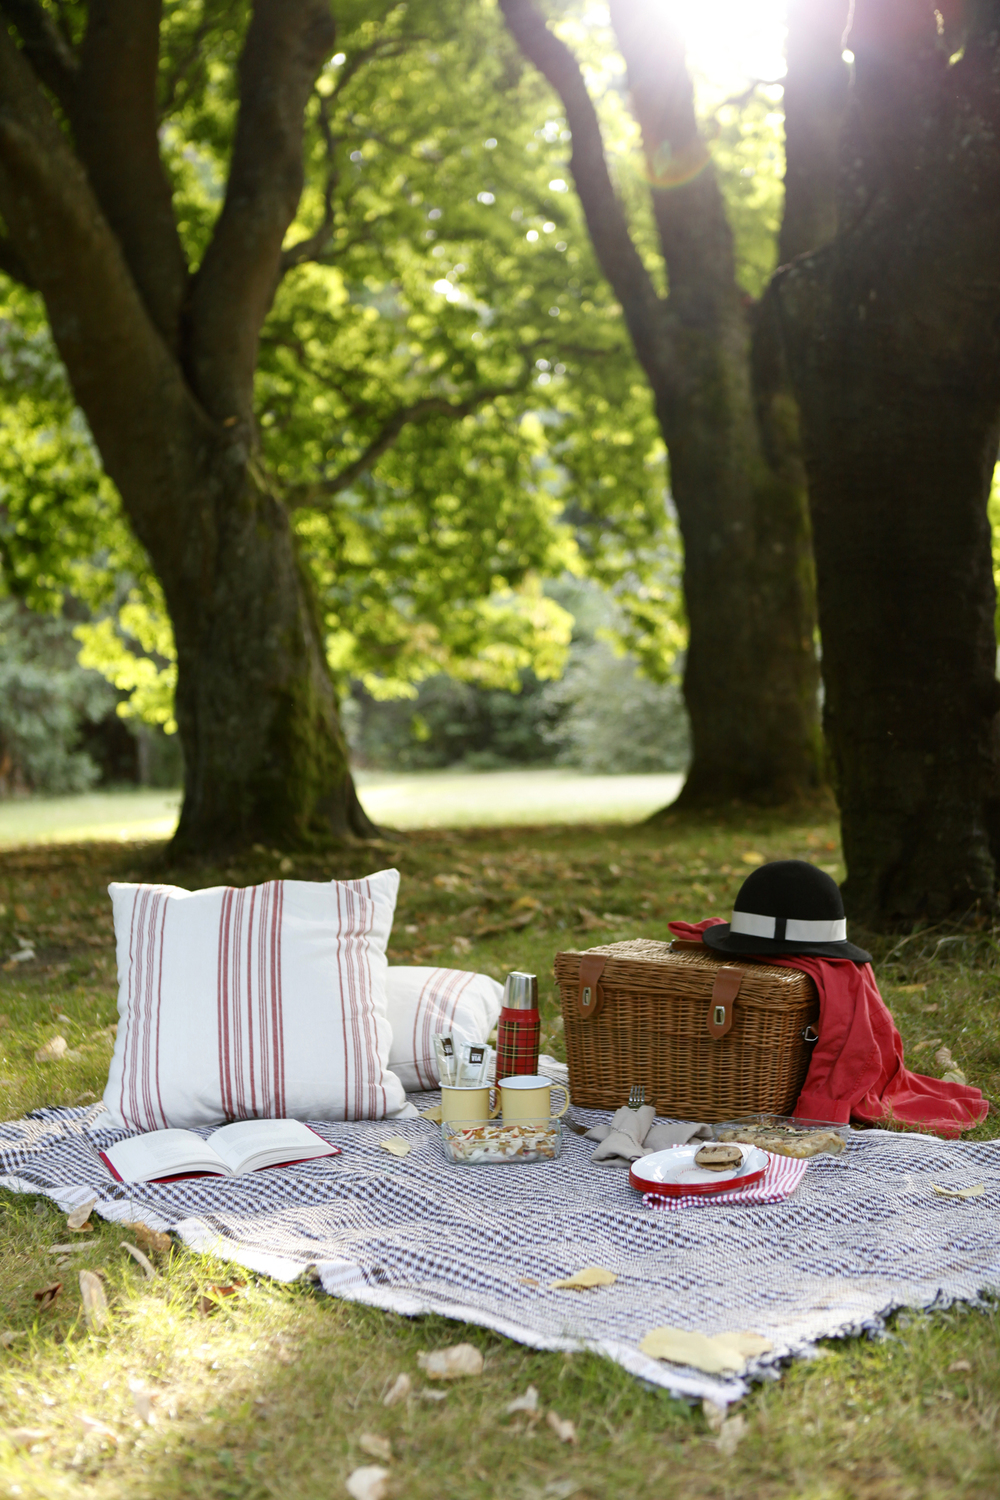 picnic in the park - image1.JPG